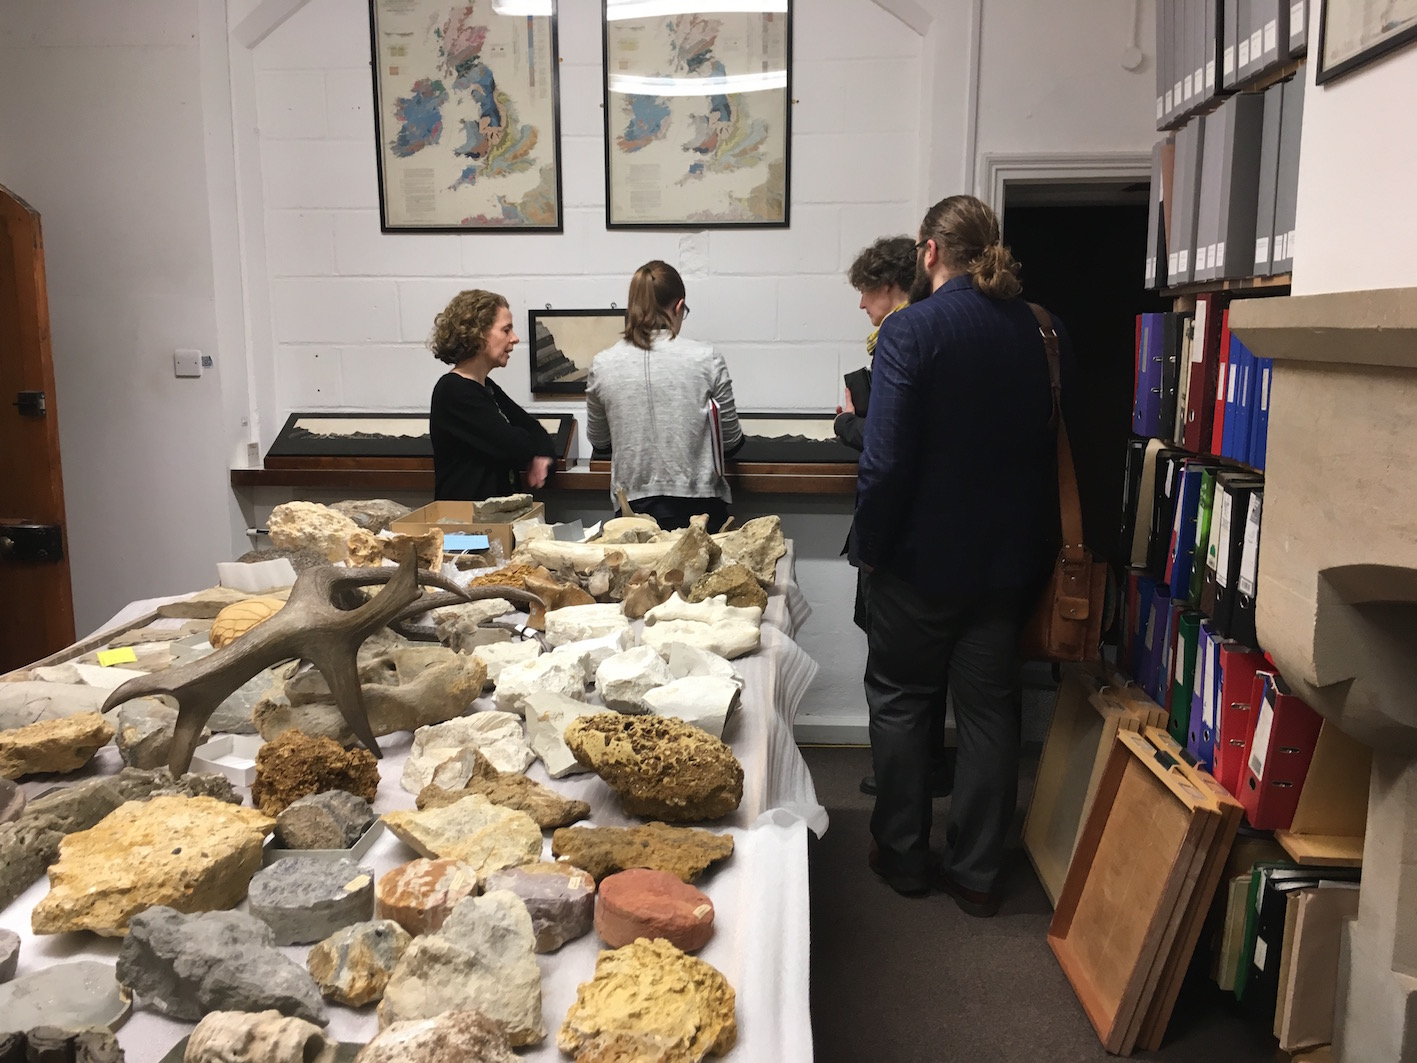 Janet Stott, Madeline Slaven, Daryl Green, and Kelly Richards examining objects related to our project.